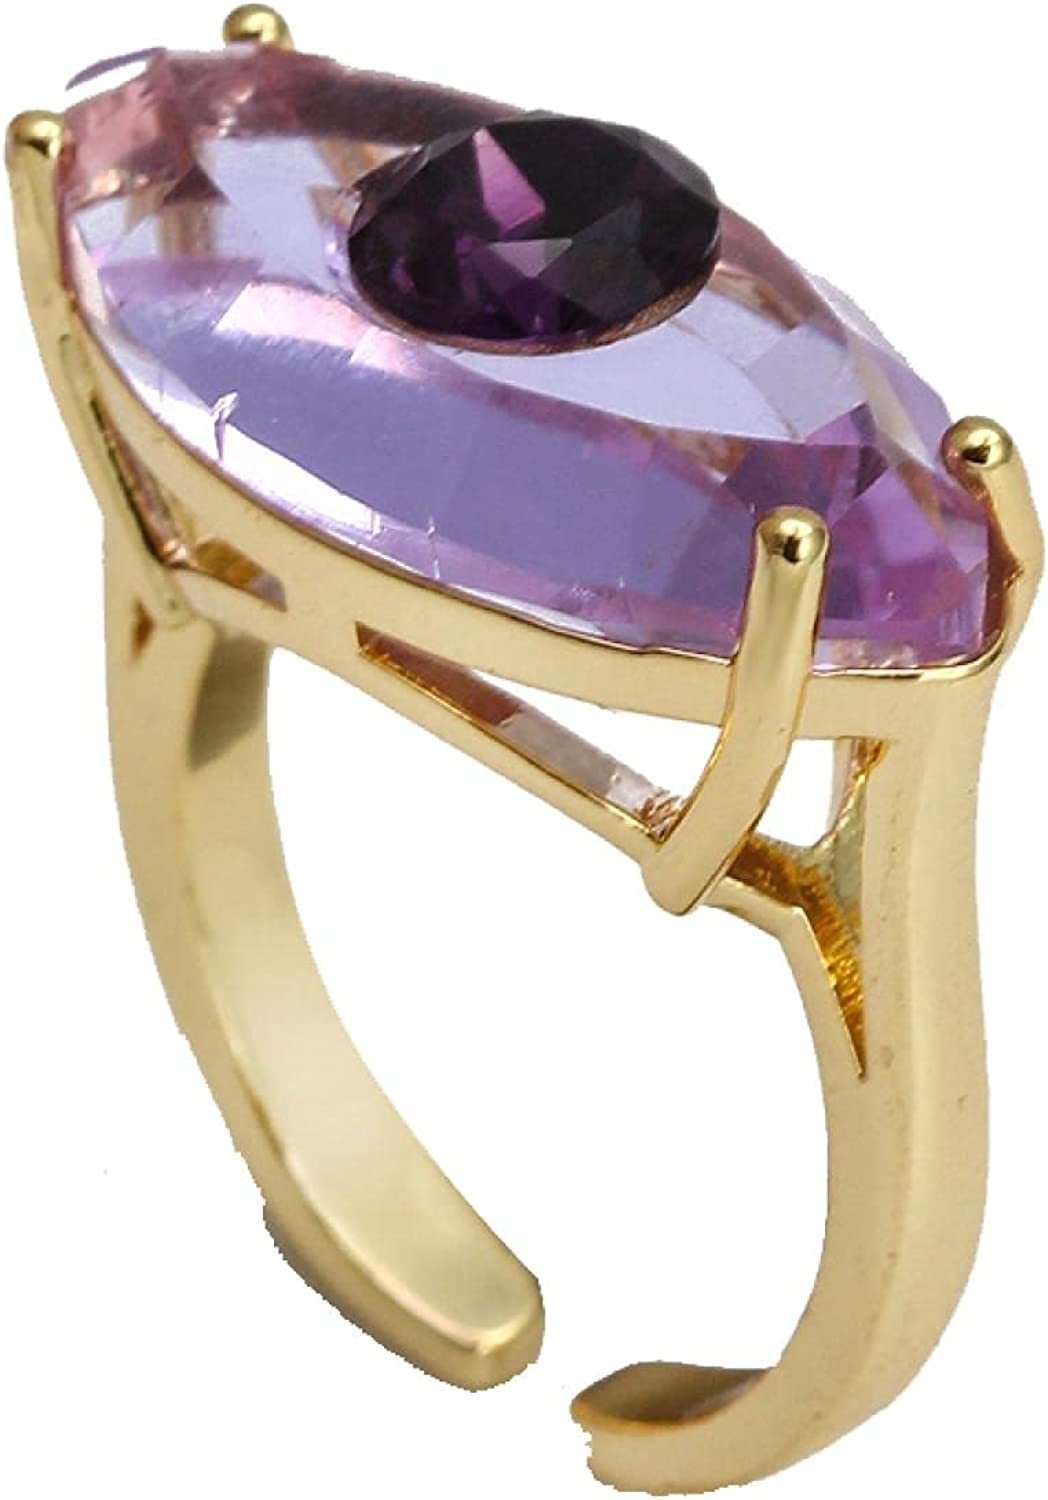 Colorful Turkish Eye Ring Adjustable Color Finger Ri Max 45% OFF Copper Fort Worth Mall Gold